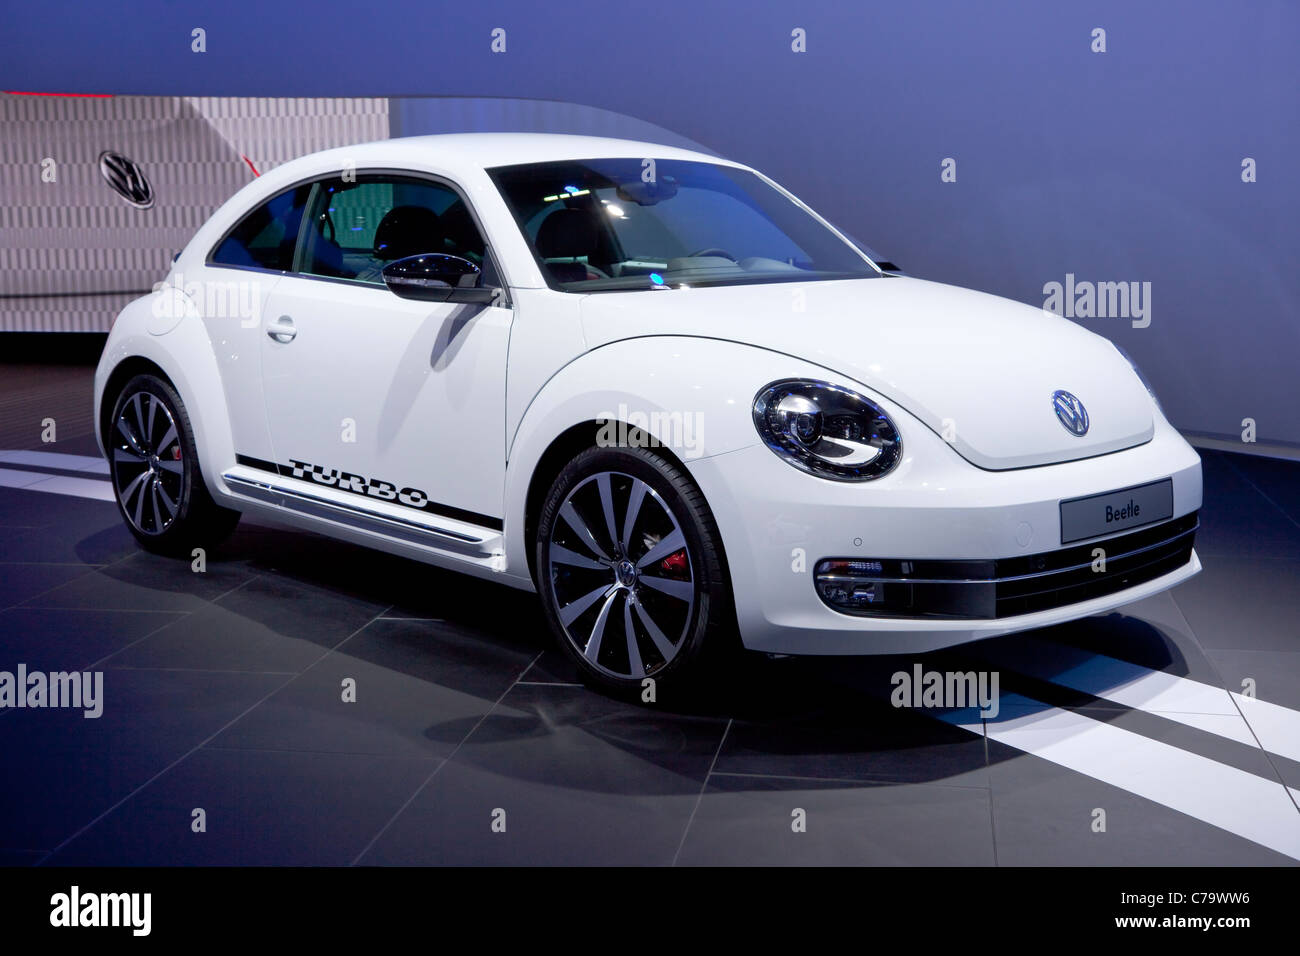 New VW Volkswagen Beetle turbo on the IAA 2011 International Motor Show in Frankfurt am Main, Germany - Stock Image